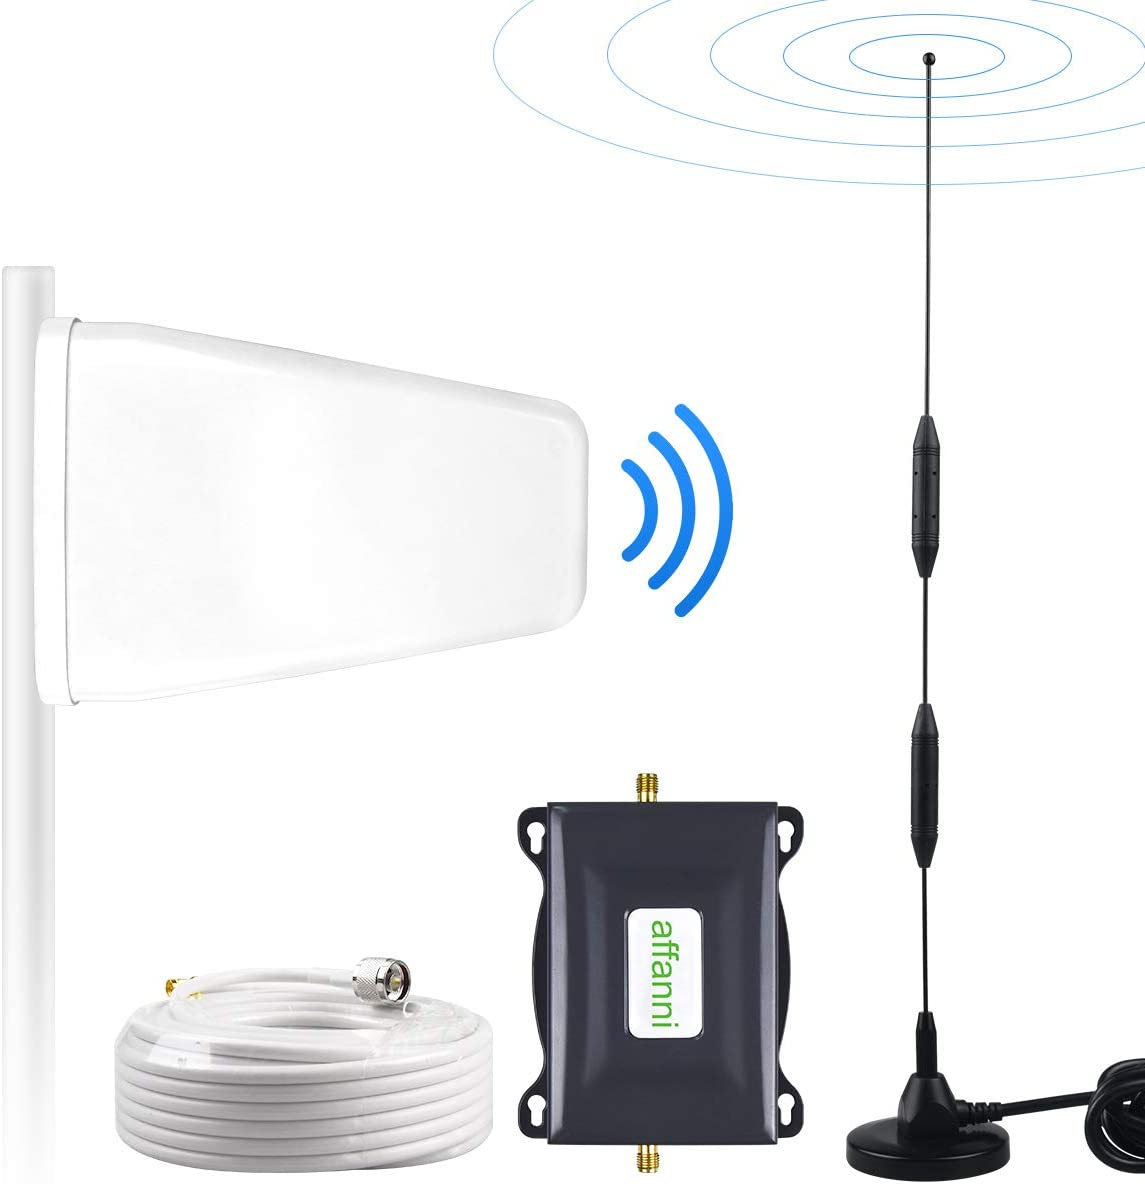 Cell Phone Signal Booster Verizon Cell Phone Booster Amplifier Verizon Home Cell Signal Booster Repeater Verizon 4G LTE Signal Booster Band13 700MHz Verizon Booster with Antennas Kit Boost Voice+Data